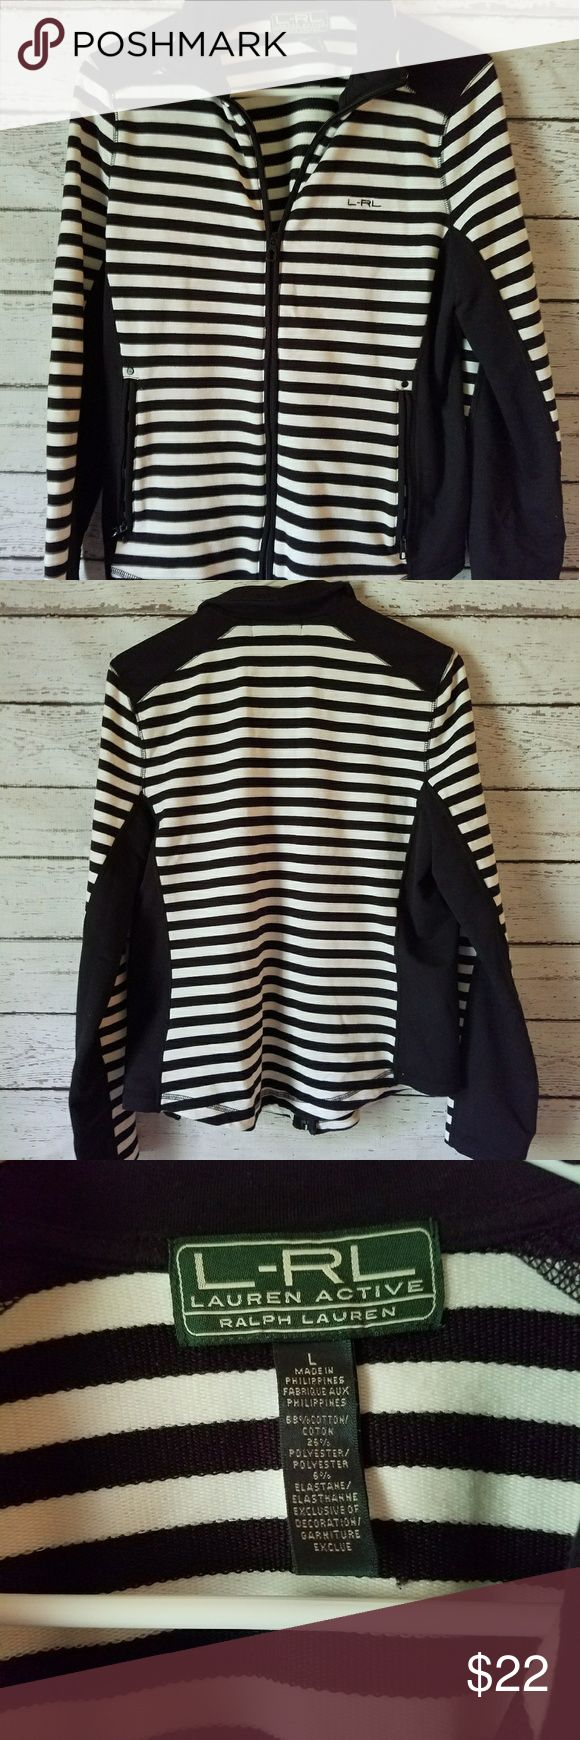 Black and white striped zip up sz large Ralph Laur Cute zip up black and white by Ralph Lauren size large. Very good condition. Please contact me with any questions. Ralph Lauren Tops